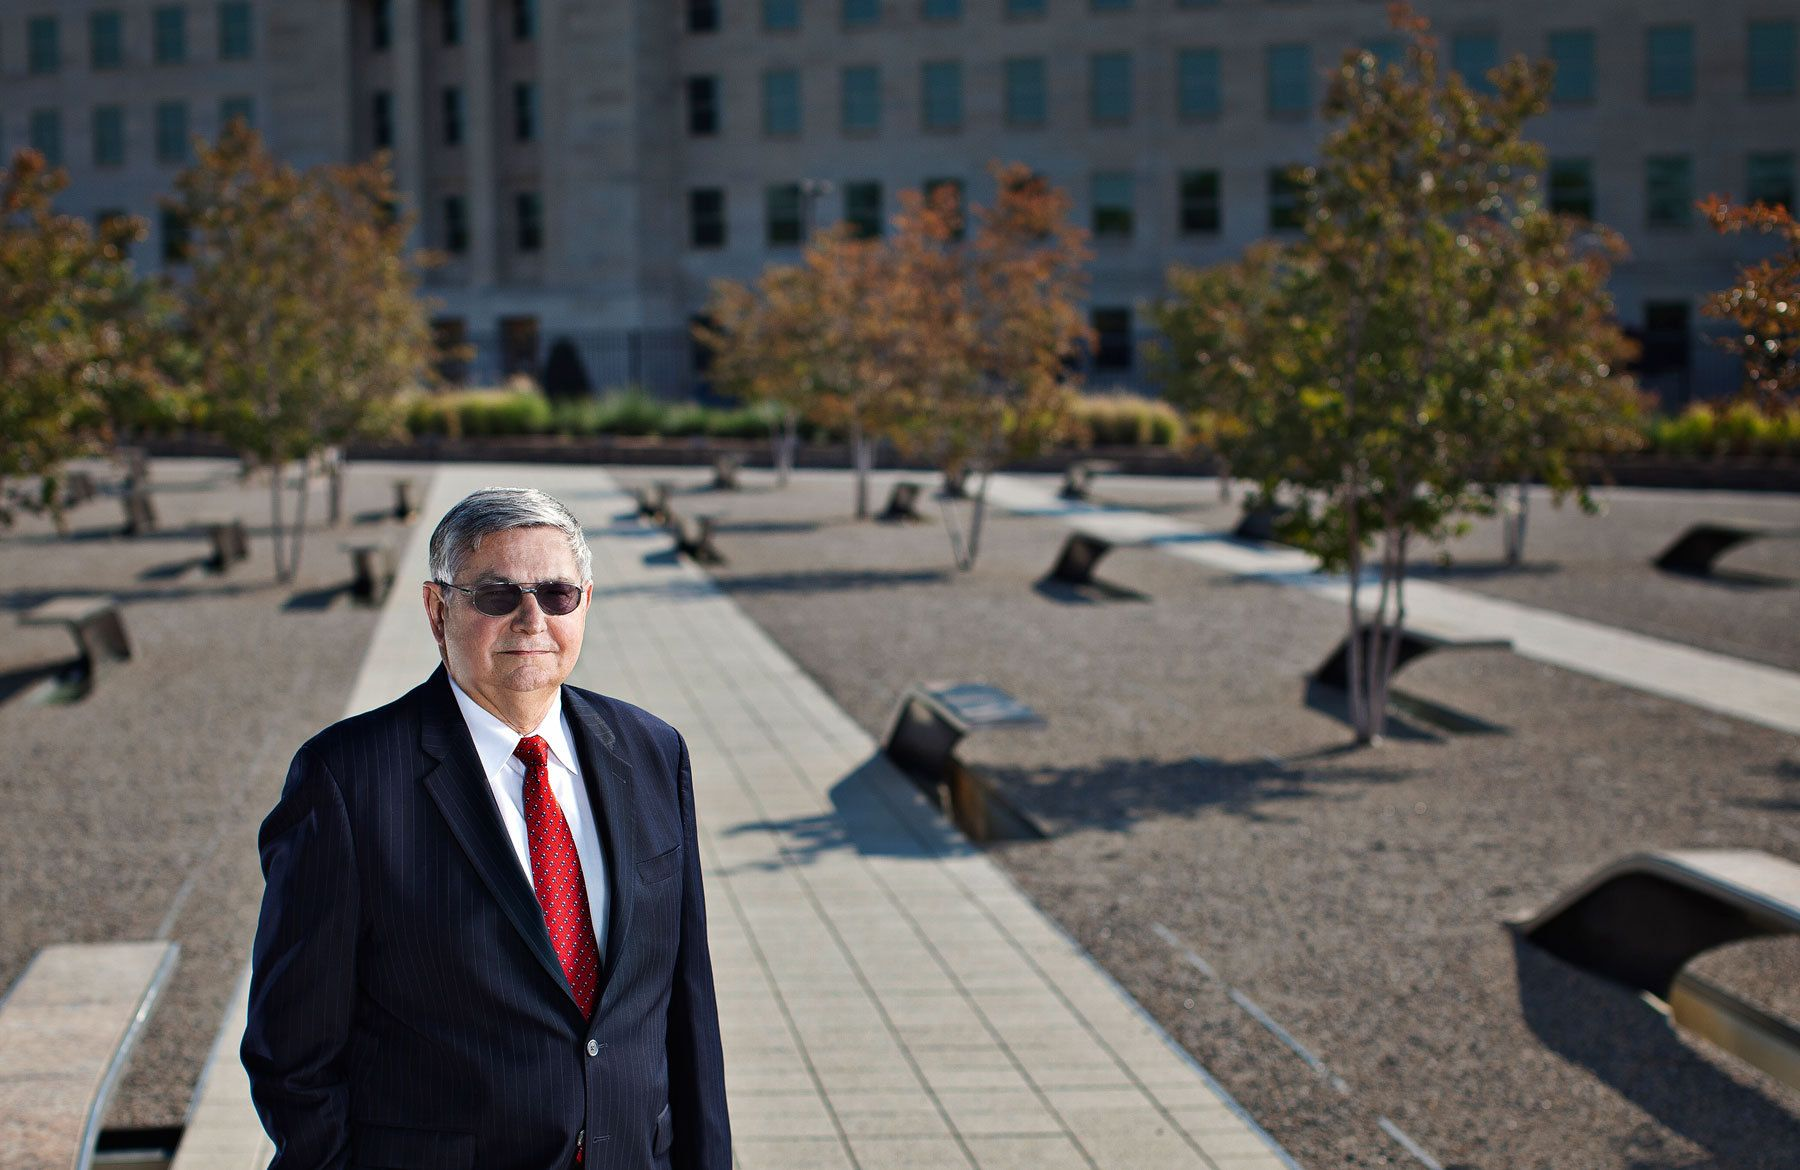 Neal Shelley- Deputy Director- US Army's Information Management Support Center lost many of his close colleagues on 9/11-   Pentagon Memorial-  Arlington, VA